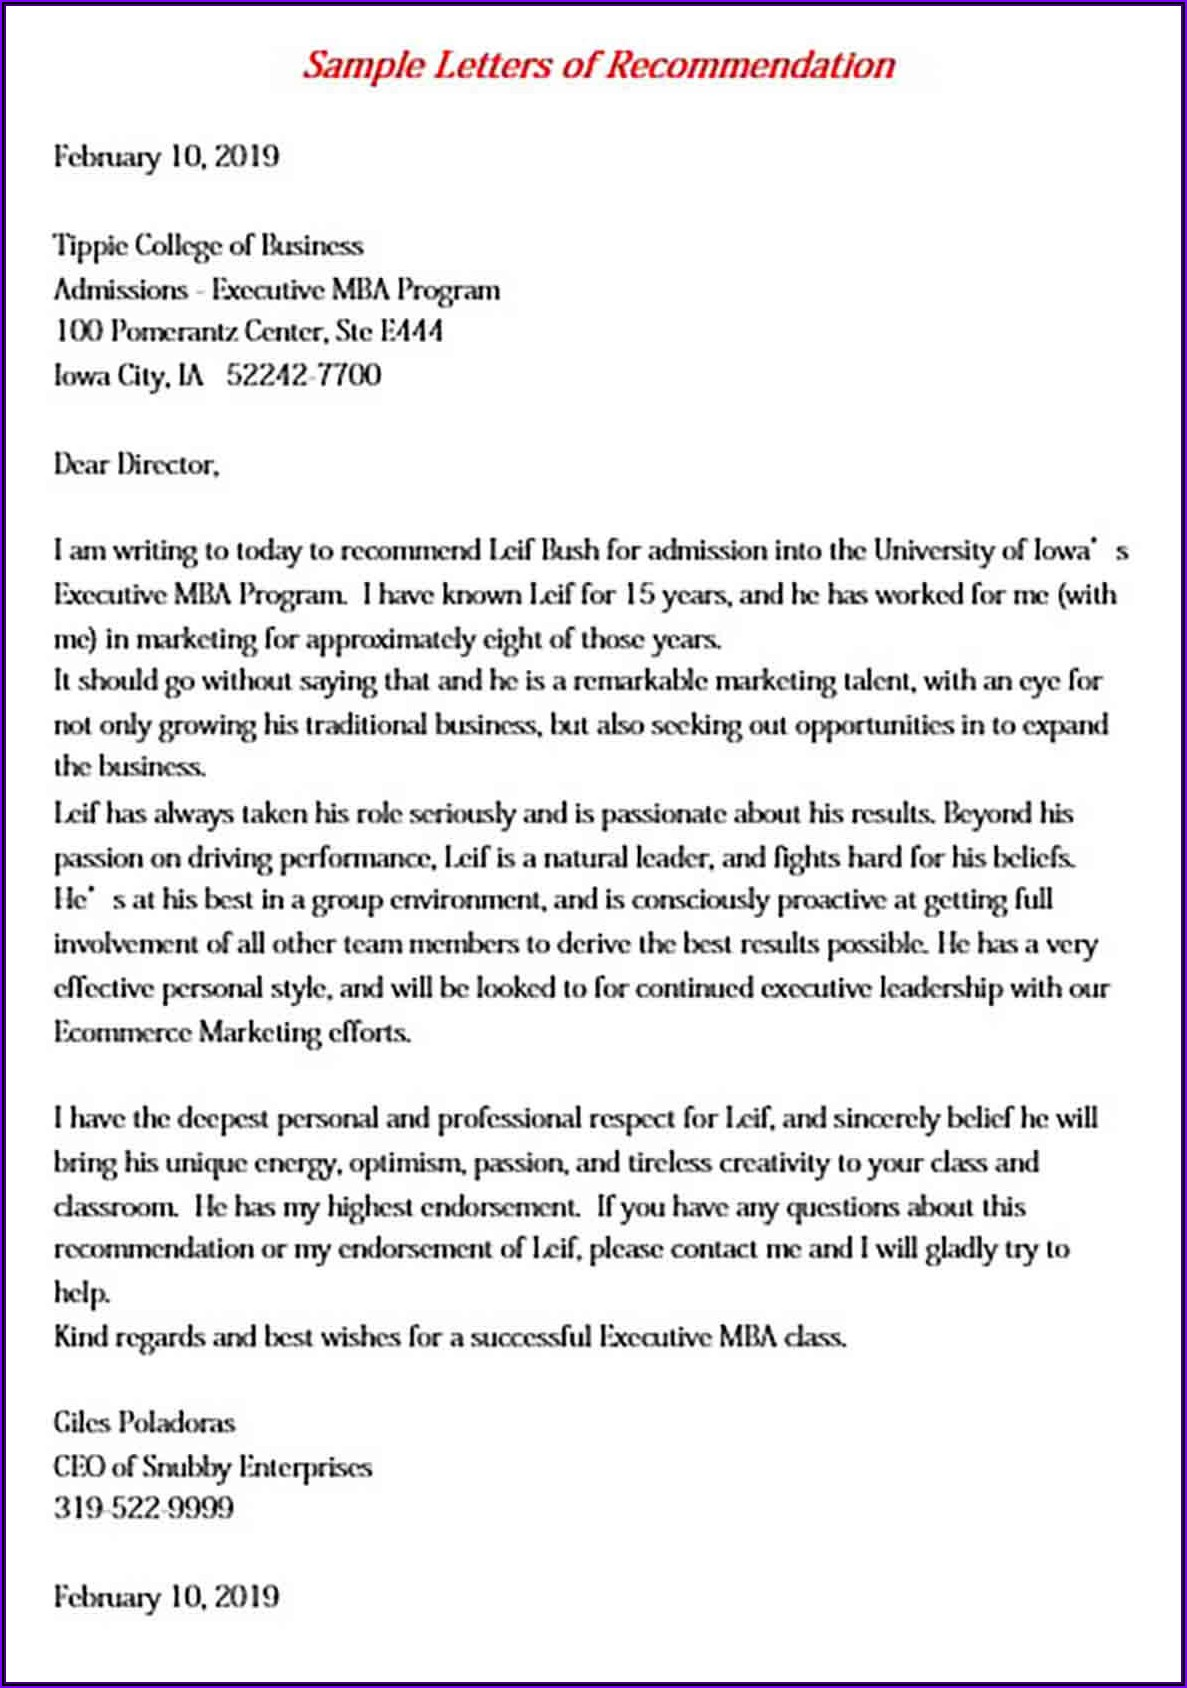 Letter Of Recommendation For Employee Pdf